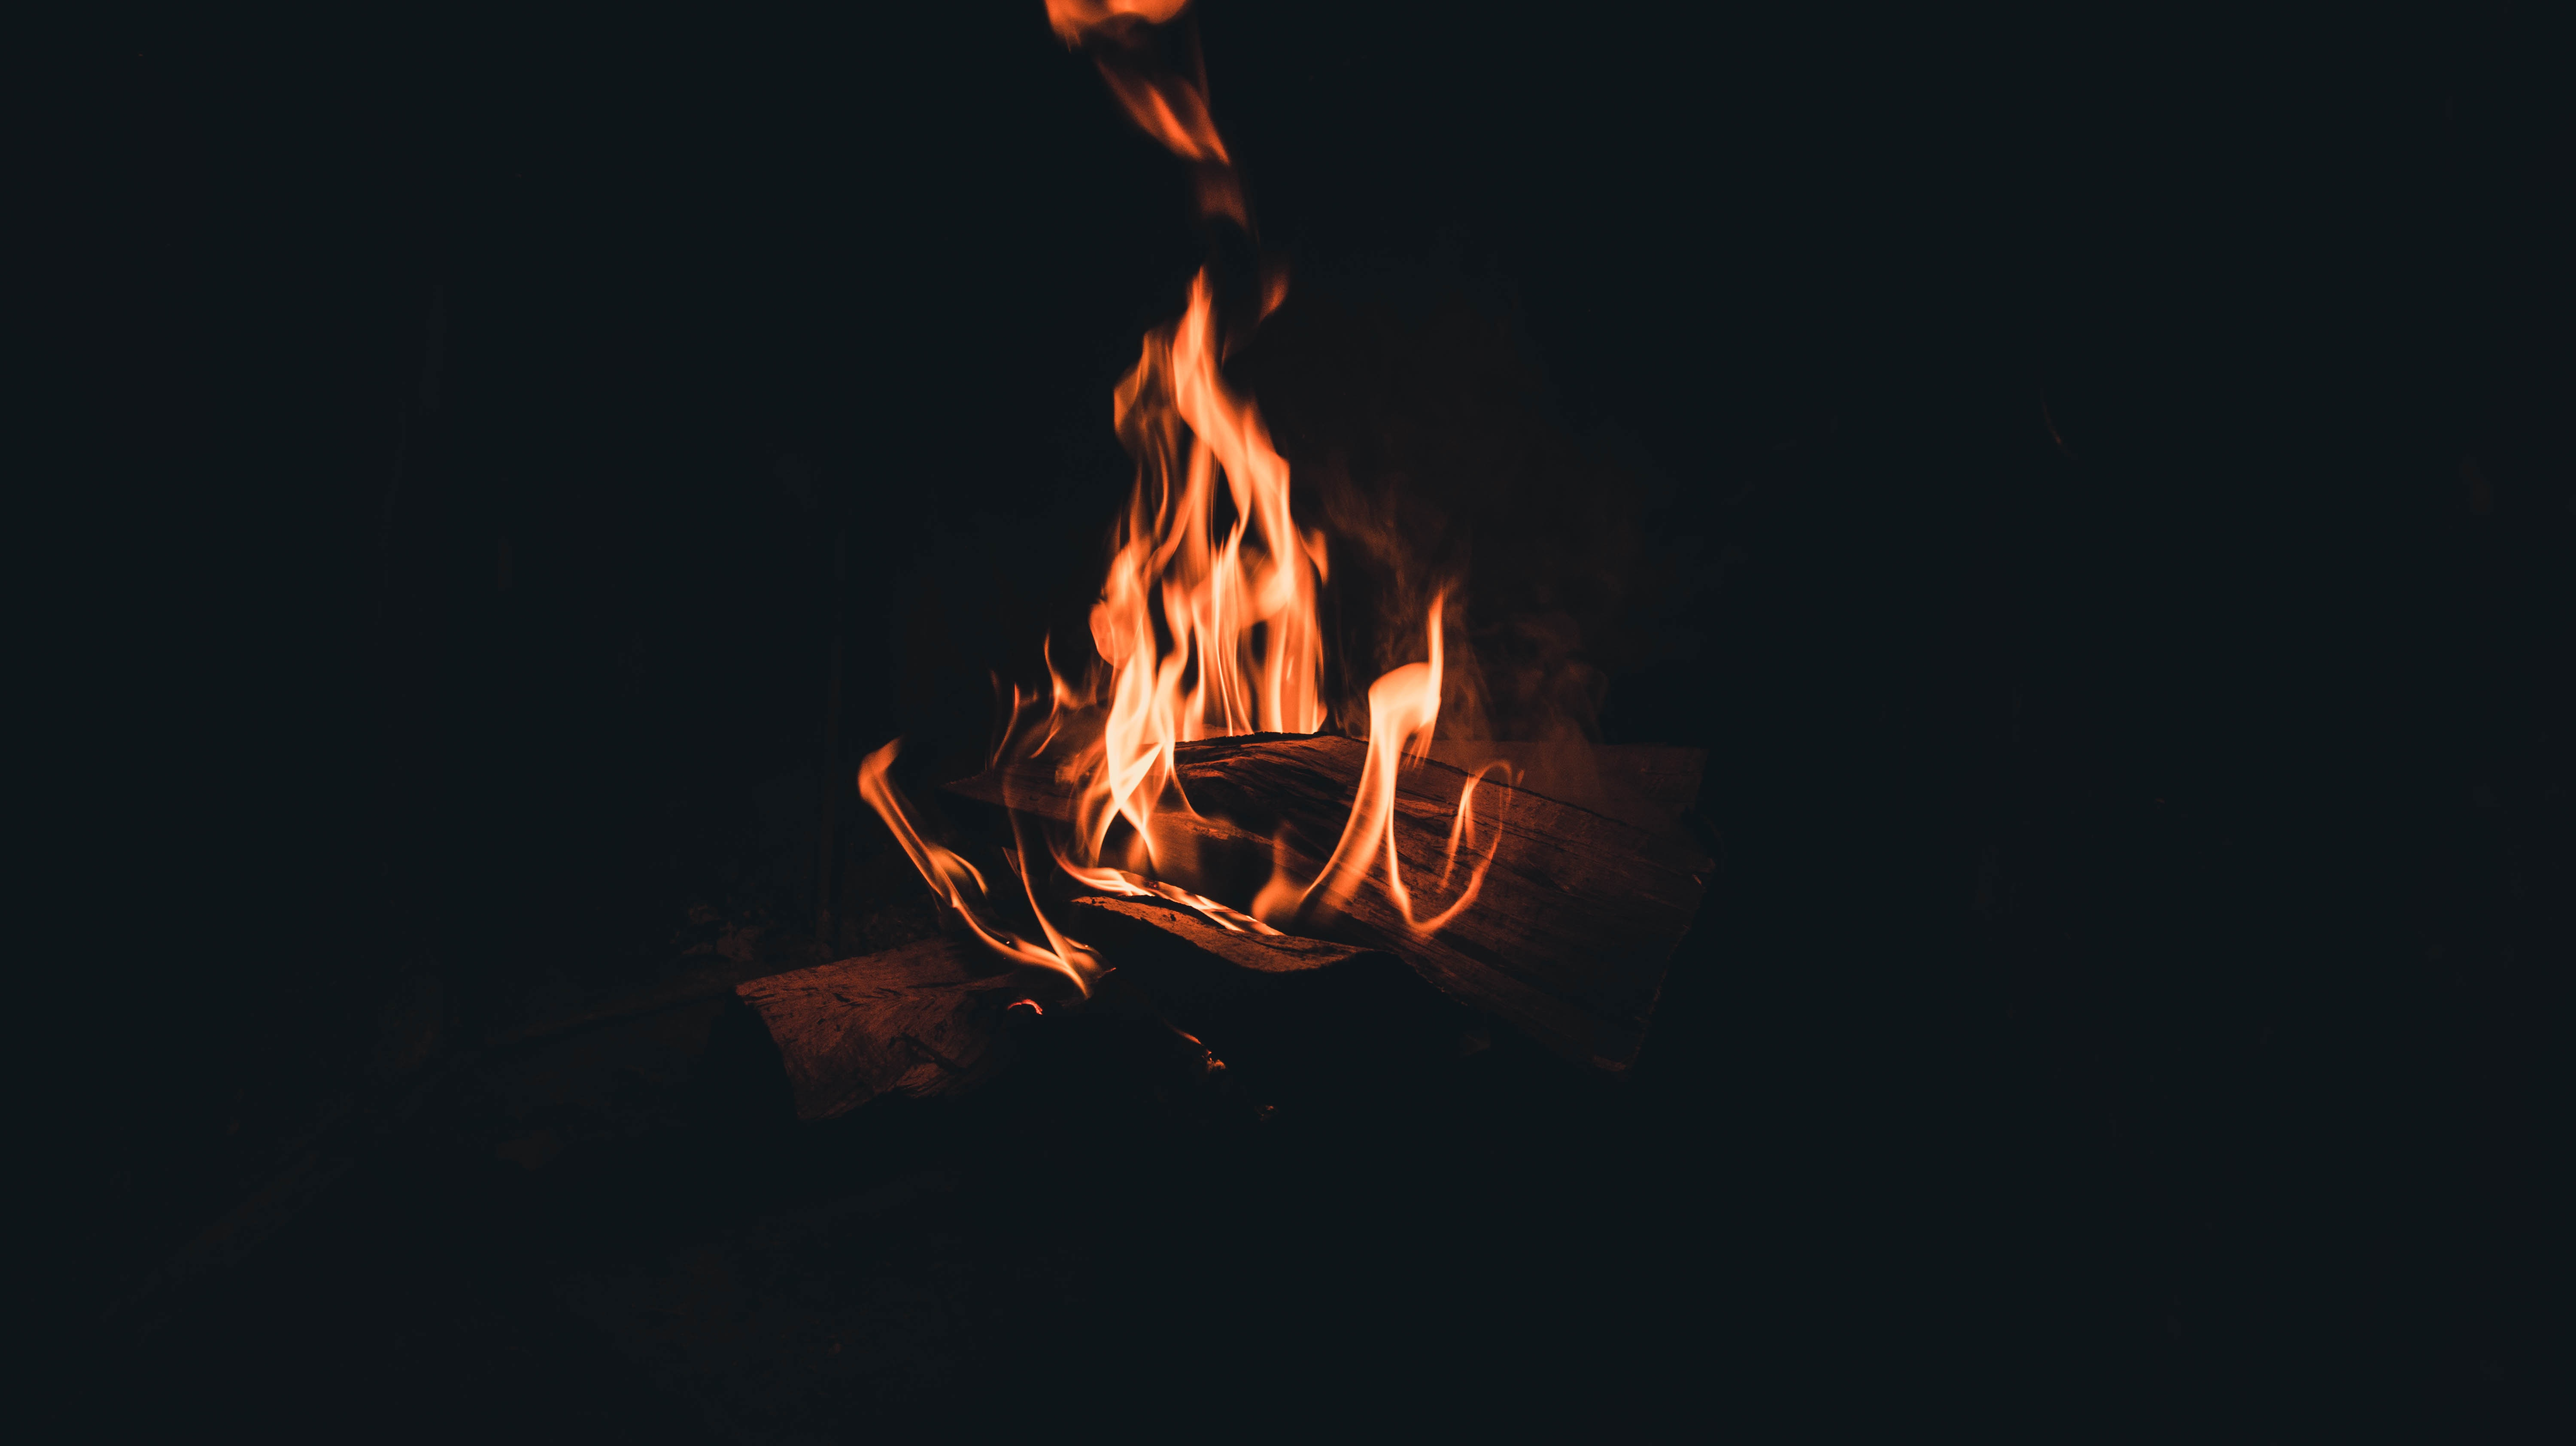 50777 Screensavers and Wallpapers Bonfire for phone. Download Darkness, Dark, Fire, Bonfire, Night, Flame, Firewood, Darkly pictures for free